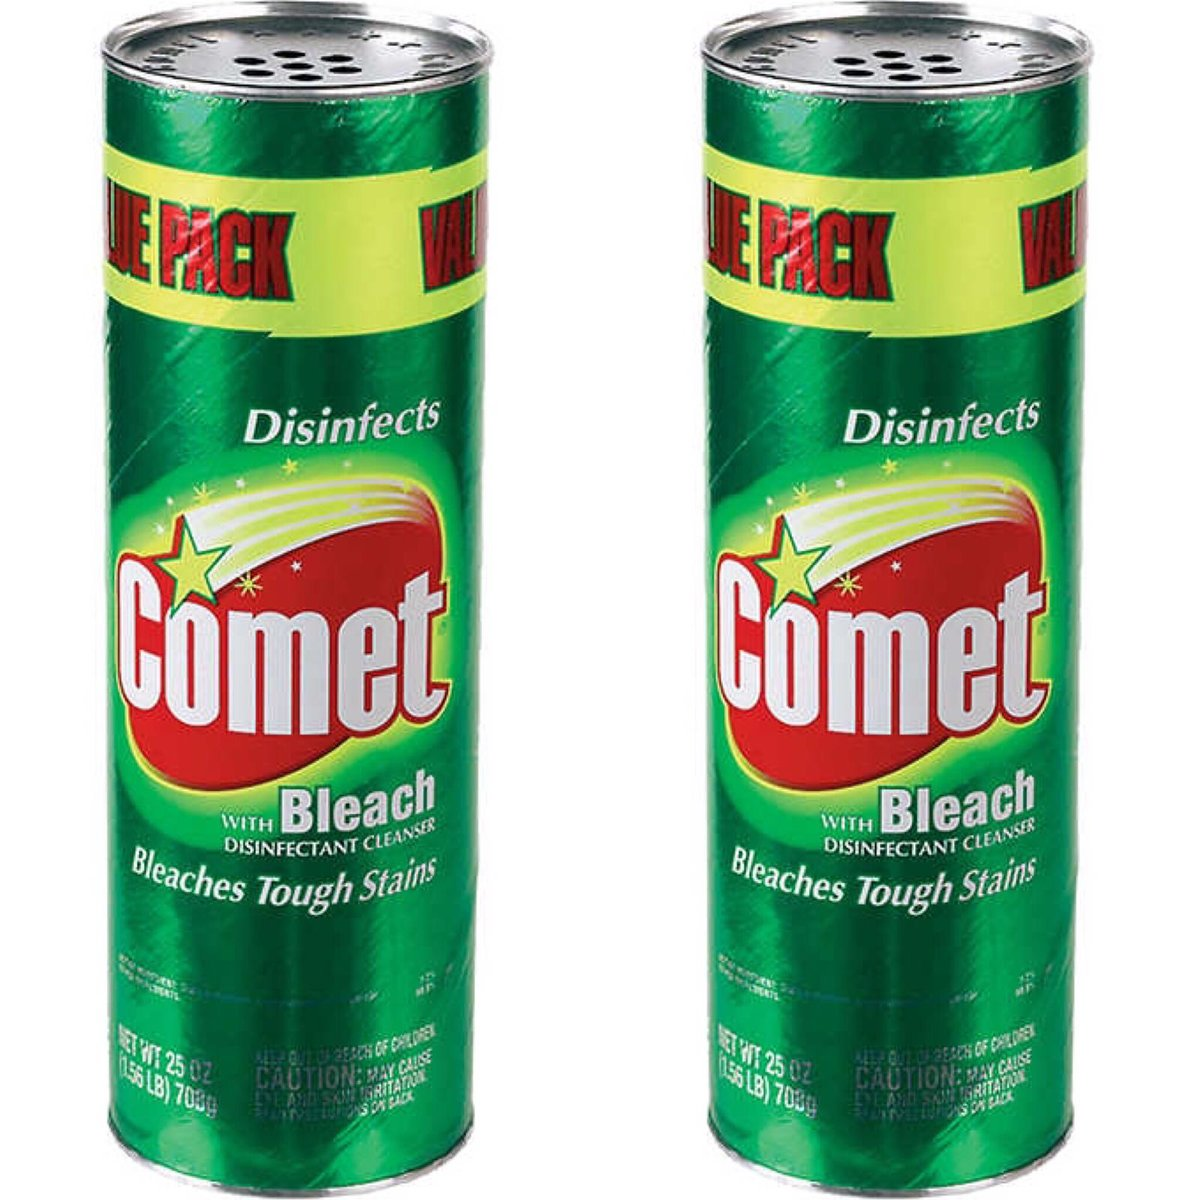 Comet with Bleach Powder Cleaner, 708g x 2